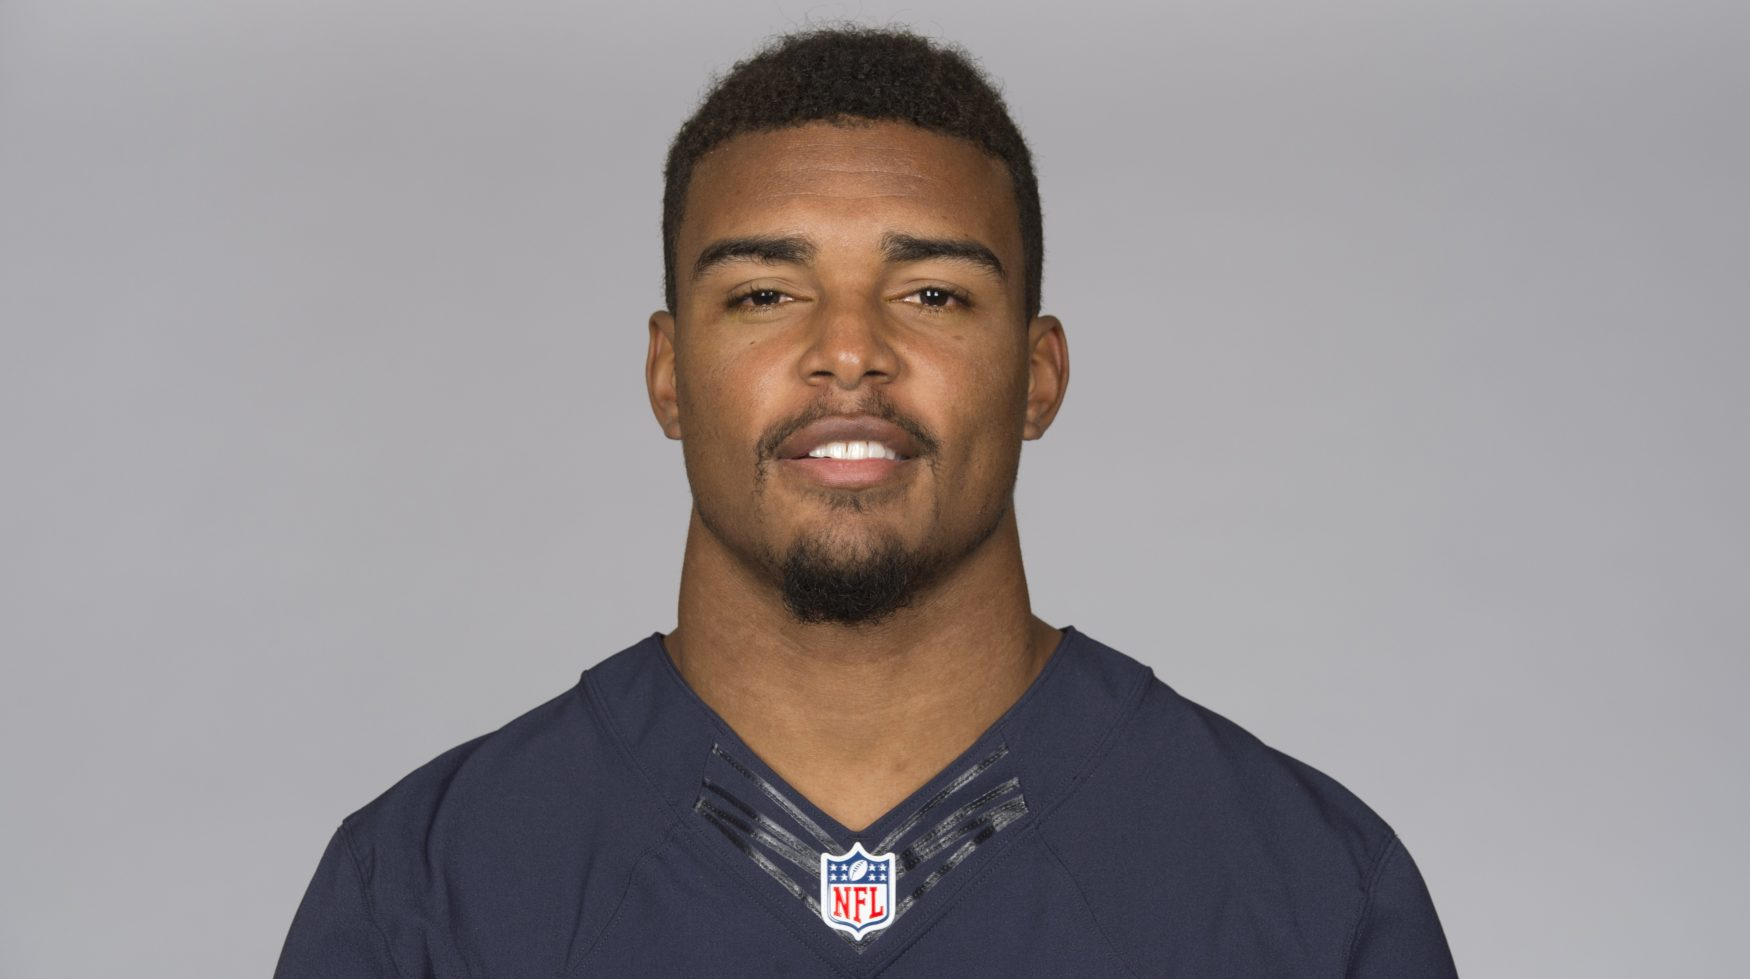 MEET BROCK VEREEN